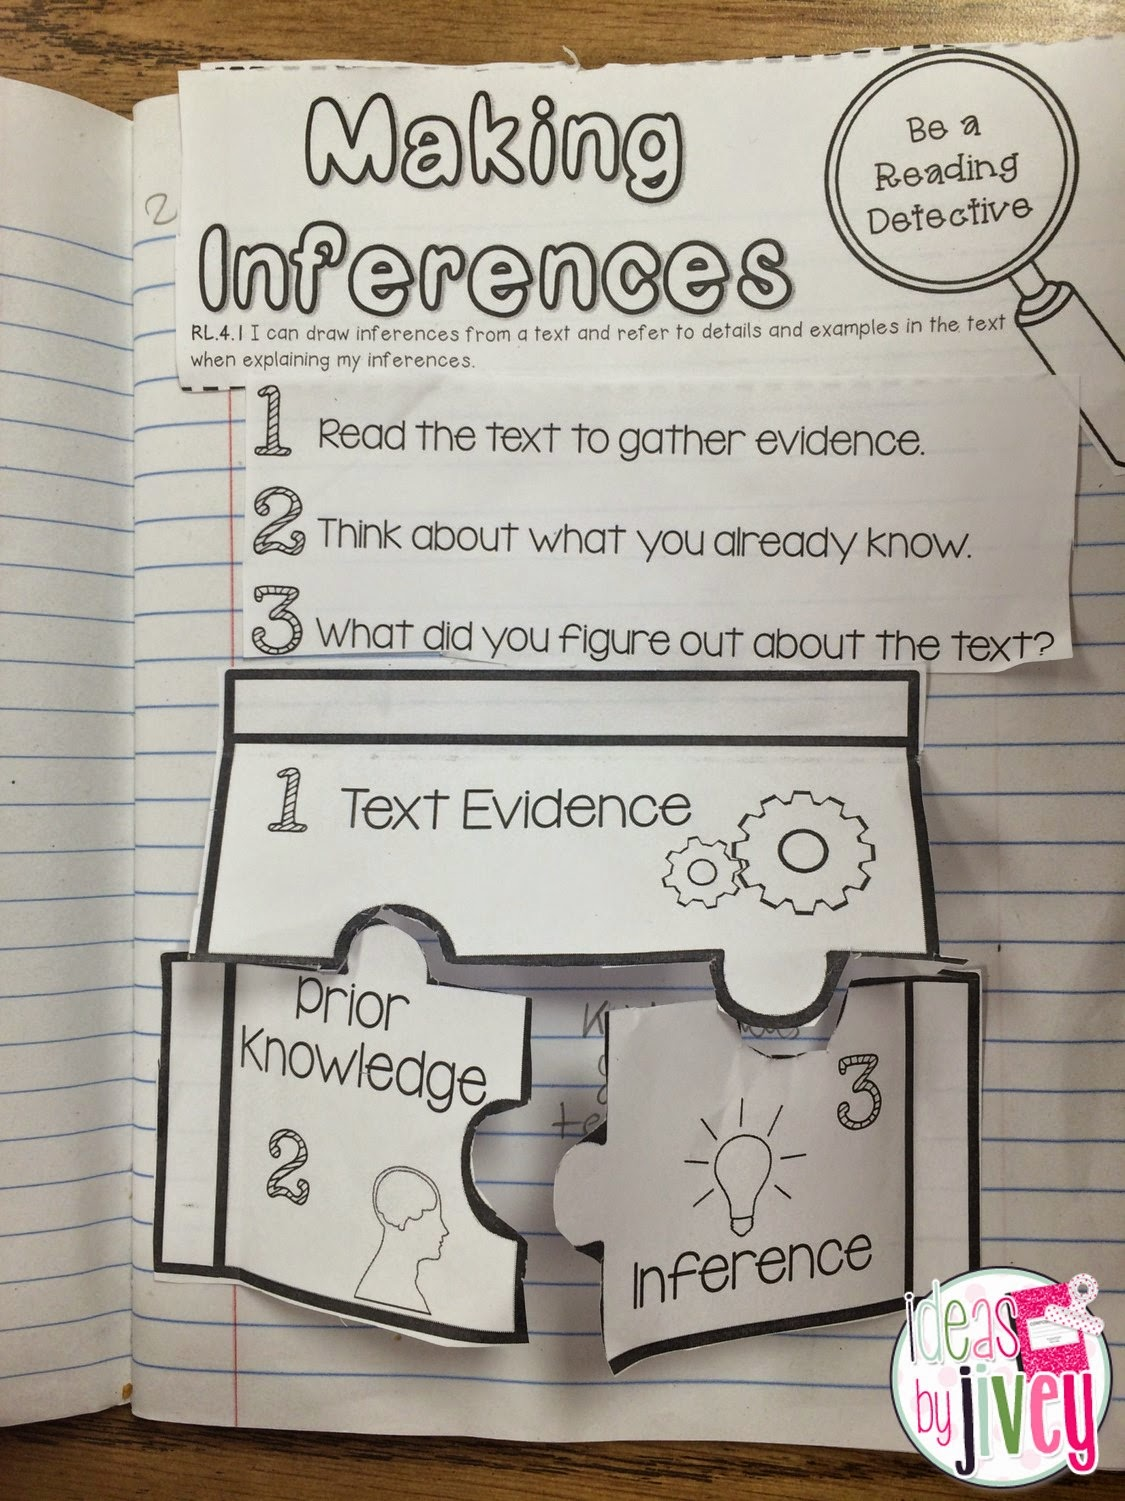 Making Inferences using Nicole's notebook with Ideas by Jivey